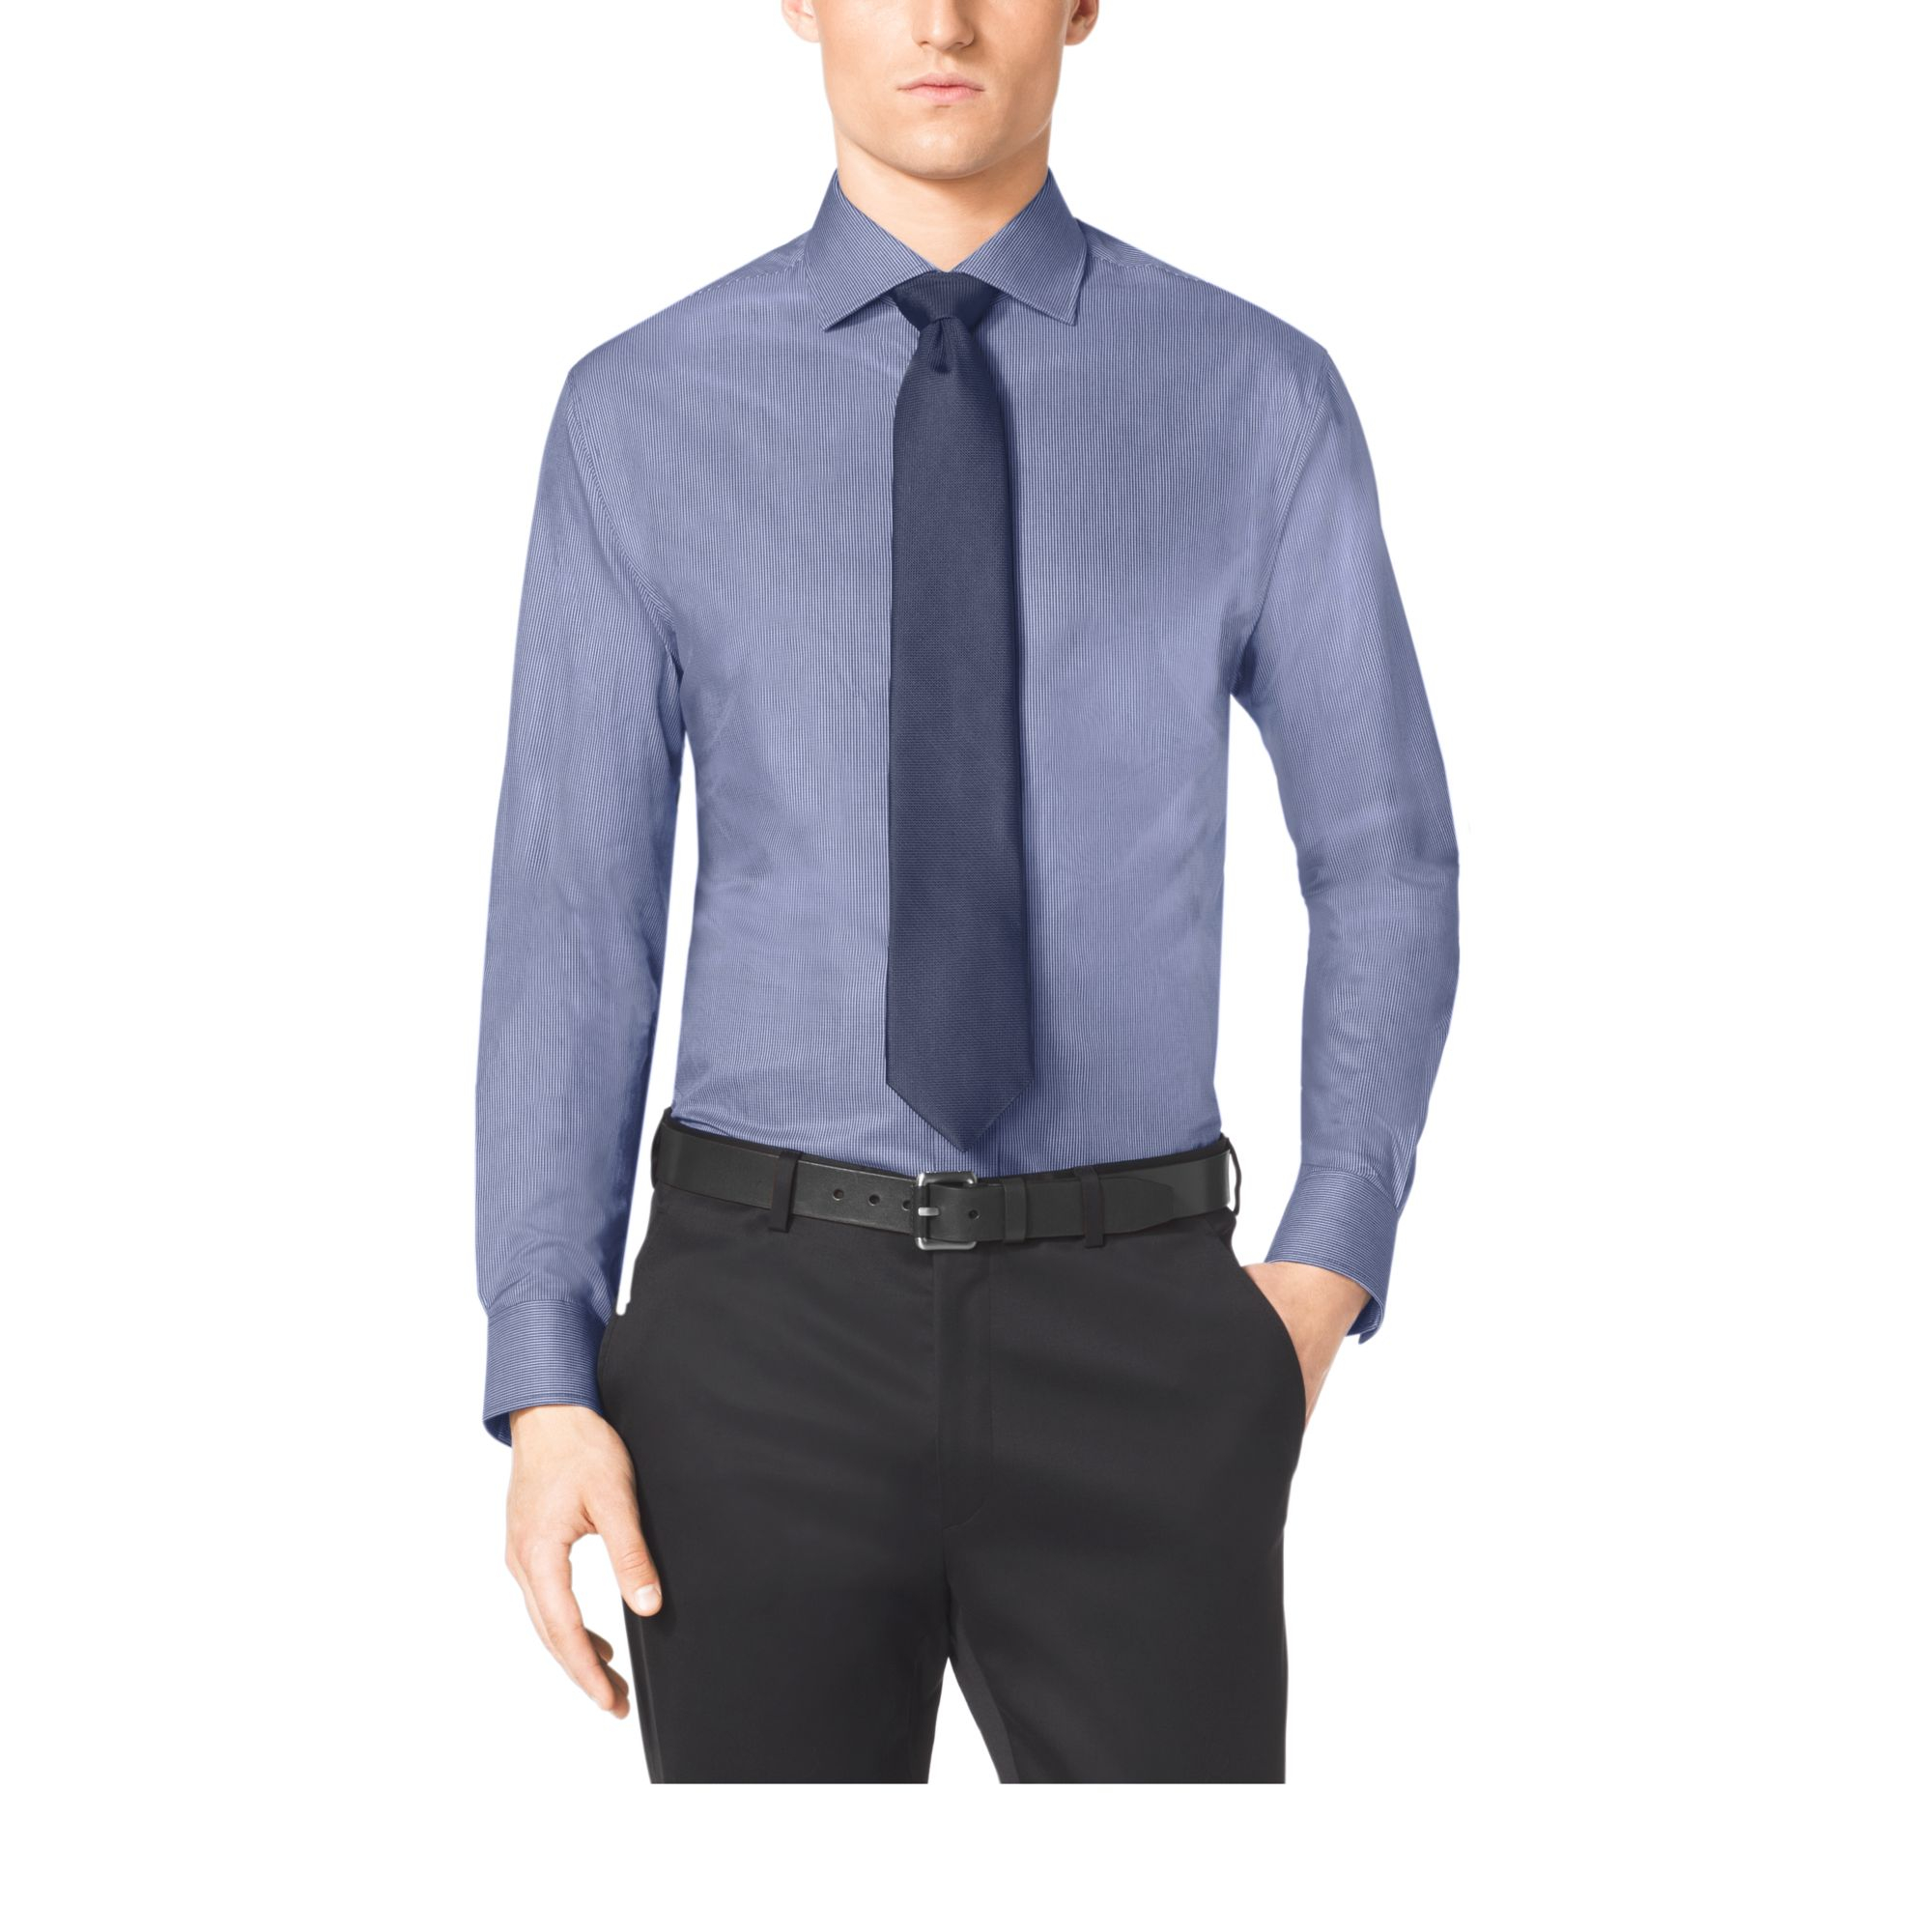 Michael kors spread collar cotton dress shirt in gray for for Men s spread collar shirts